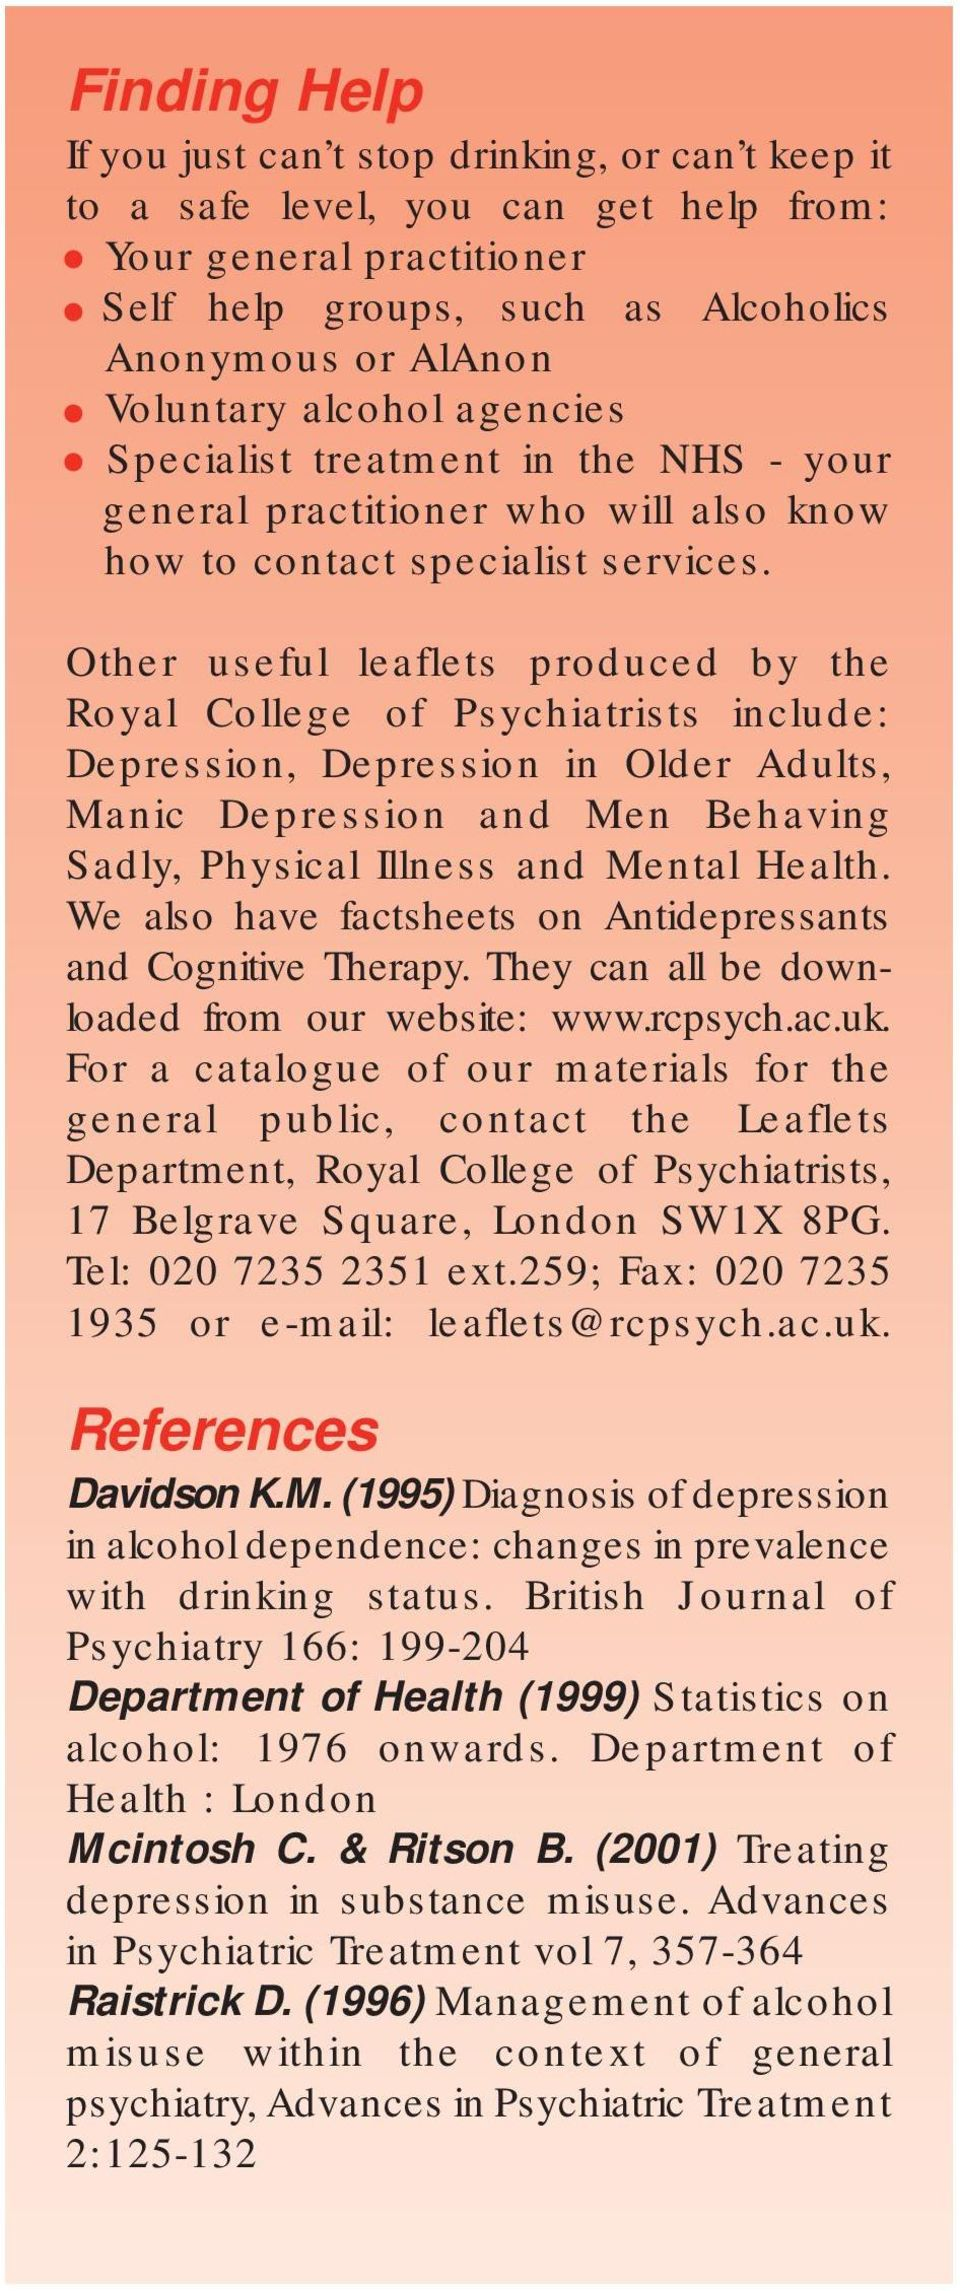 Other useful leaflets produced by the Royal College of Psychiatrists include: Depression, Depression in Older Adults, Manic Depression and Men Behaving Sadly, Physical Illness and Mental Health.